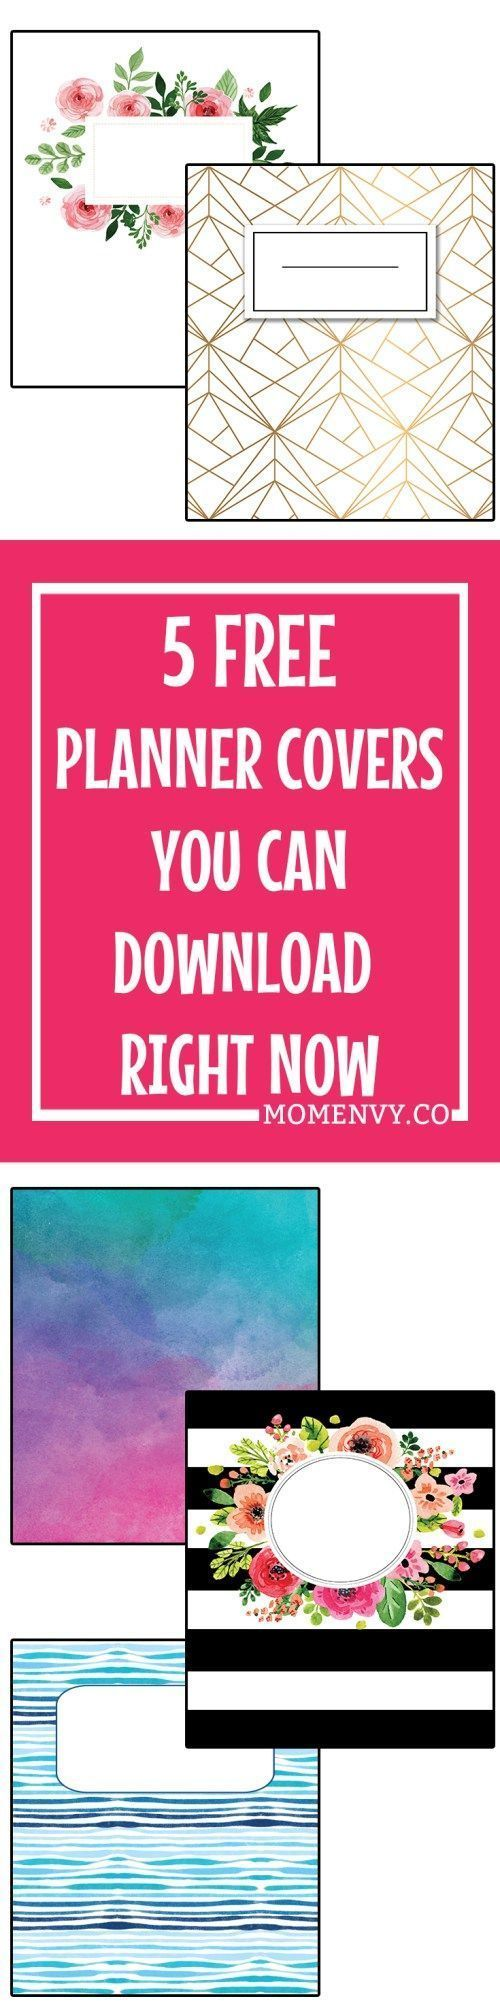 Free Family Binder and Planner Covers. Completely customizable. Download 5 free planner covers in: A5, Happy Planner Classic, and Letter Size. 5 different designs ready to download and print for free. Free Happy Planner accessories, free planner accessories, free family binder cover and printables.